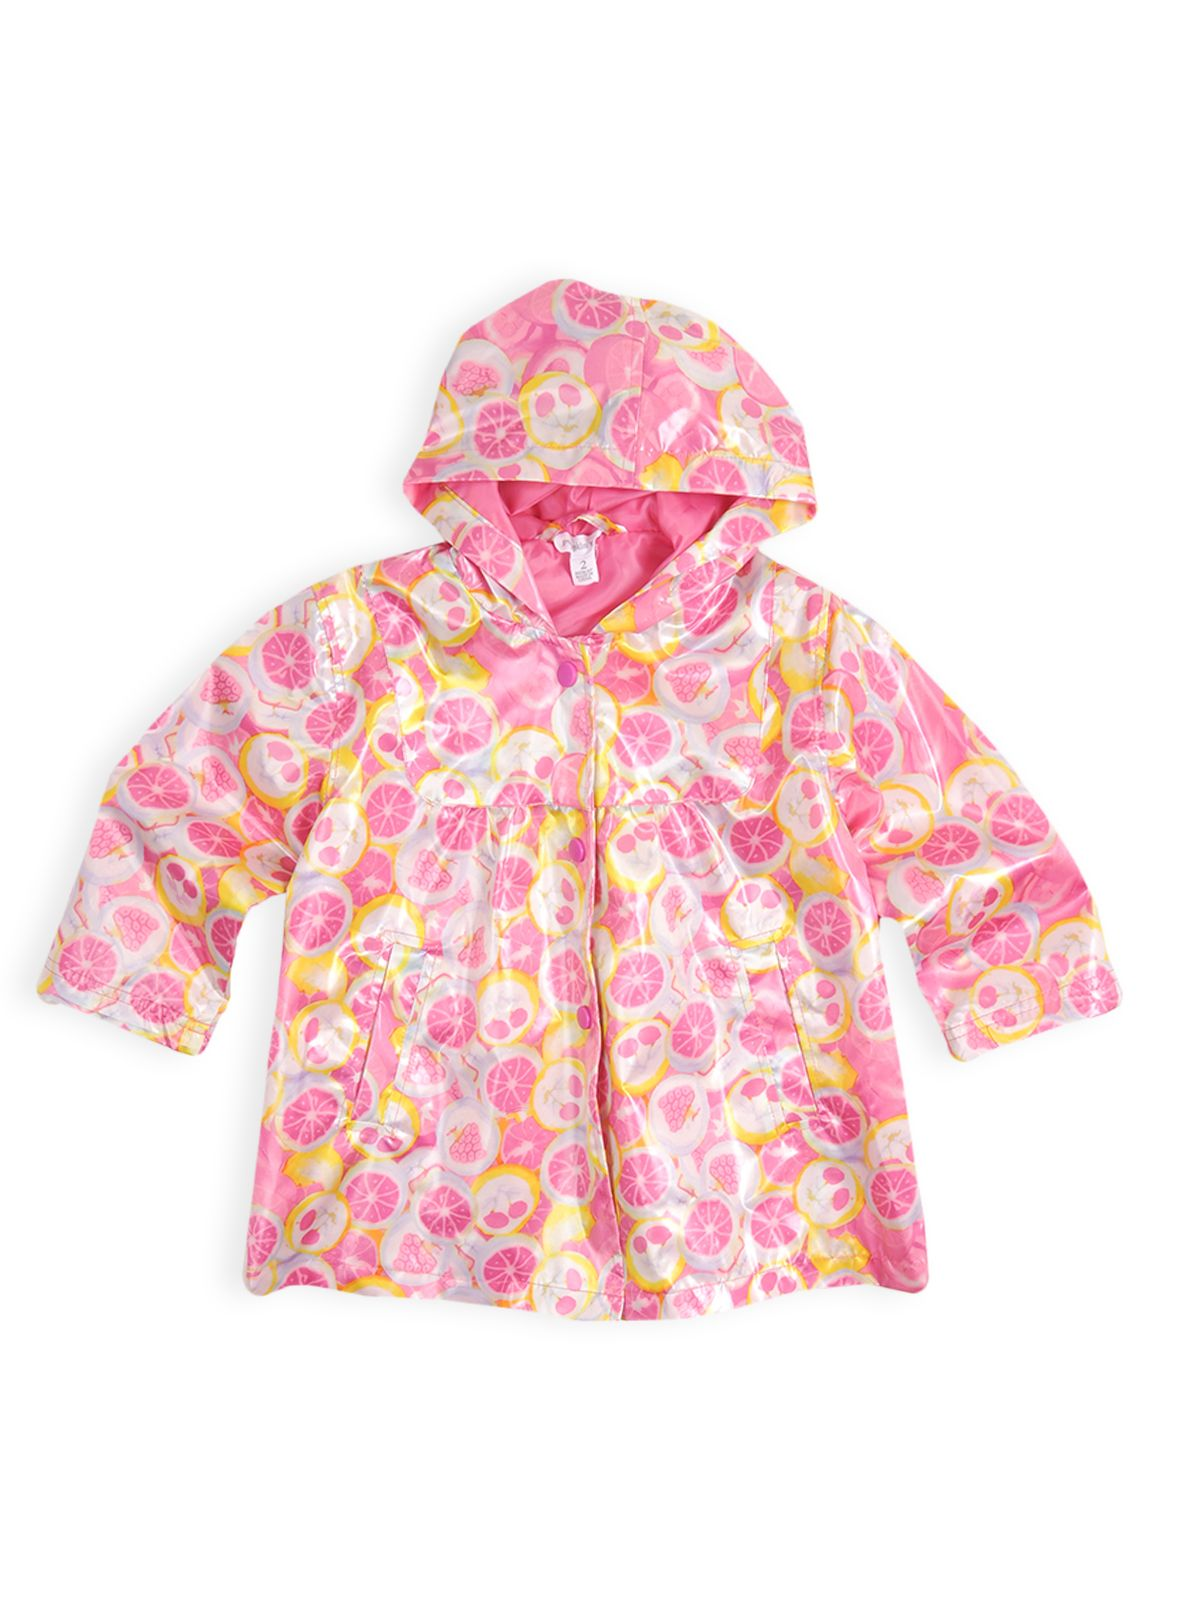 Girls yummy candy pleated raincoat